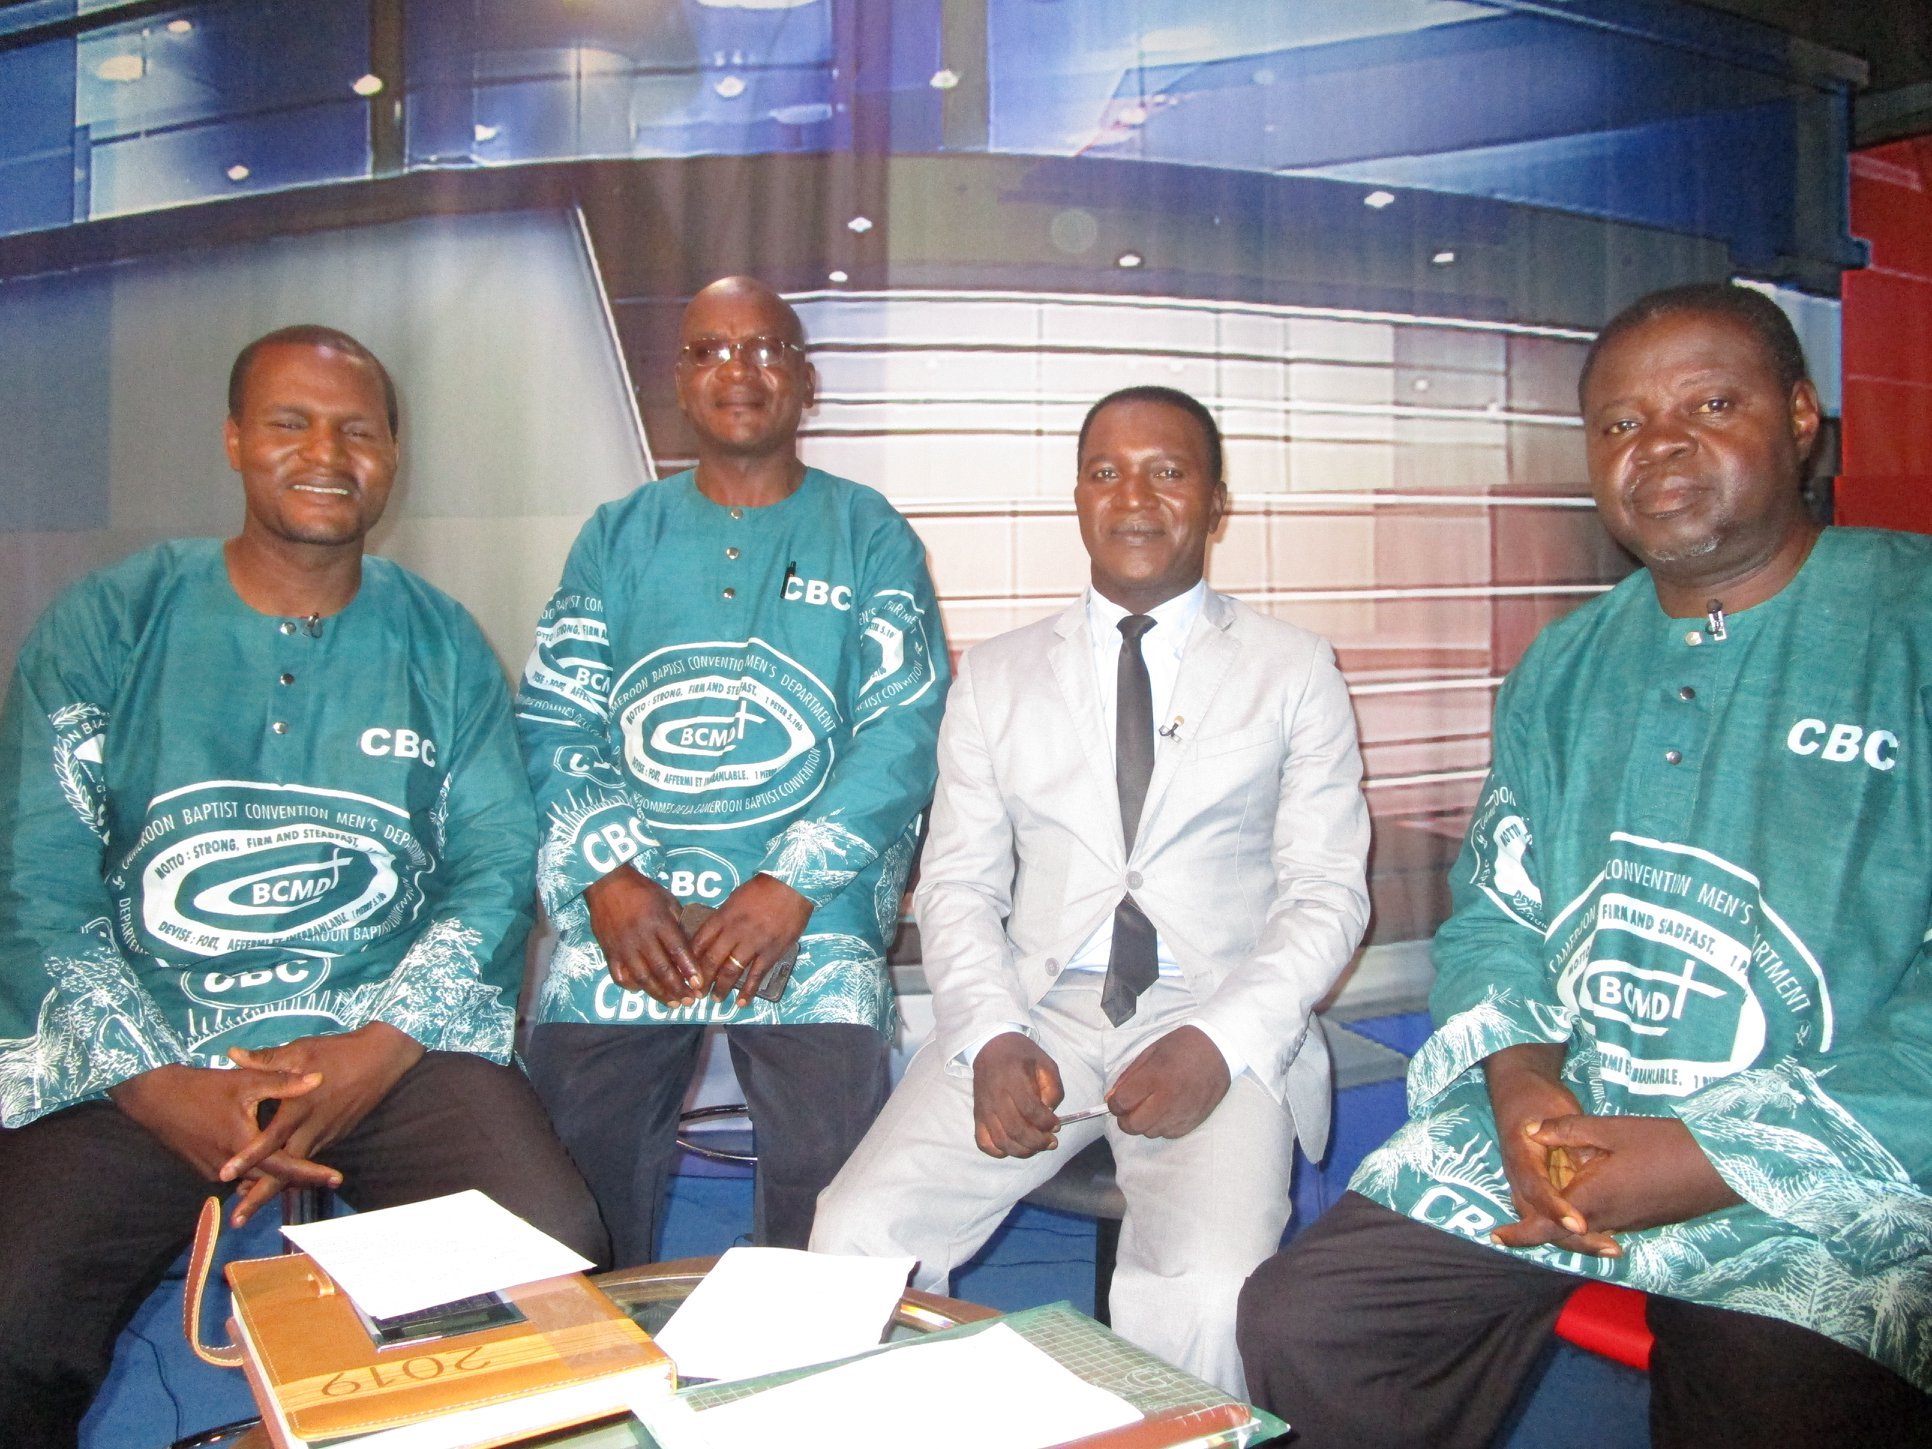 The Cameroon Baptist Convention Men's Department makes future plans amid COVID-19